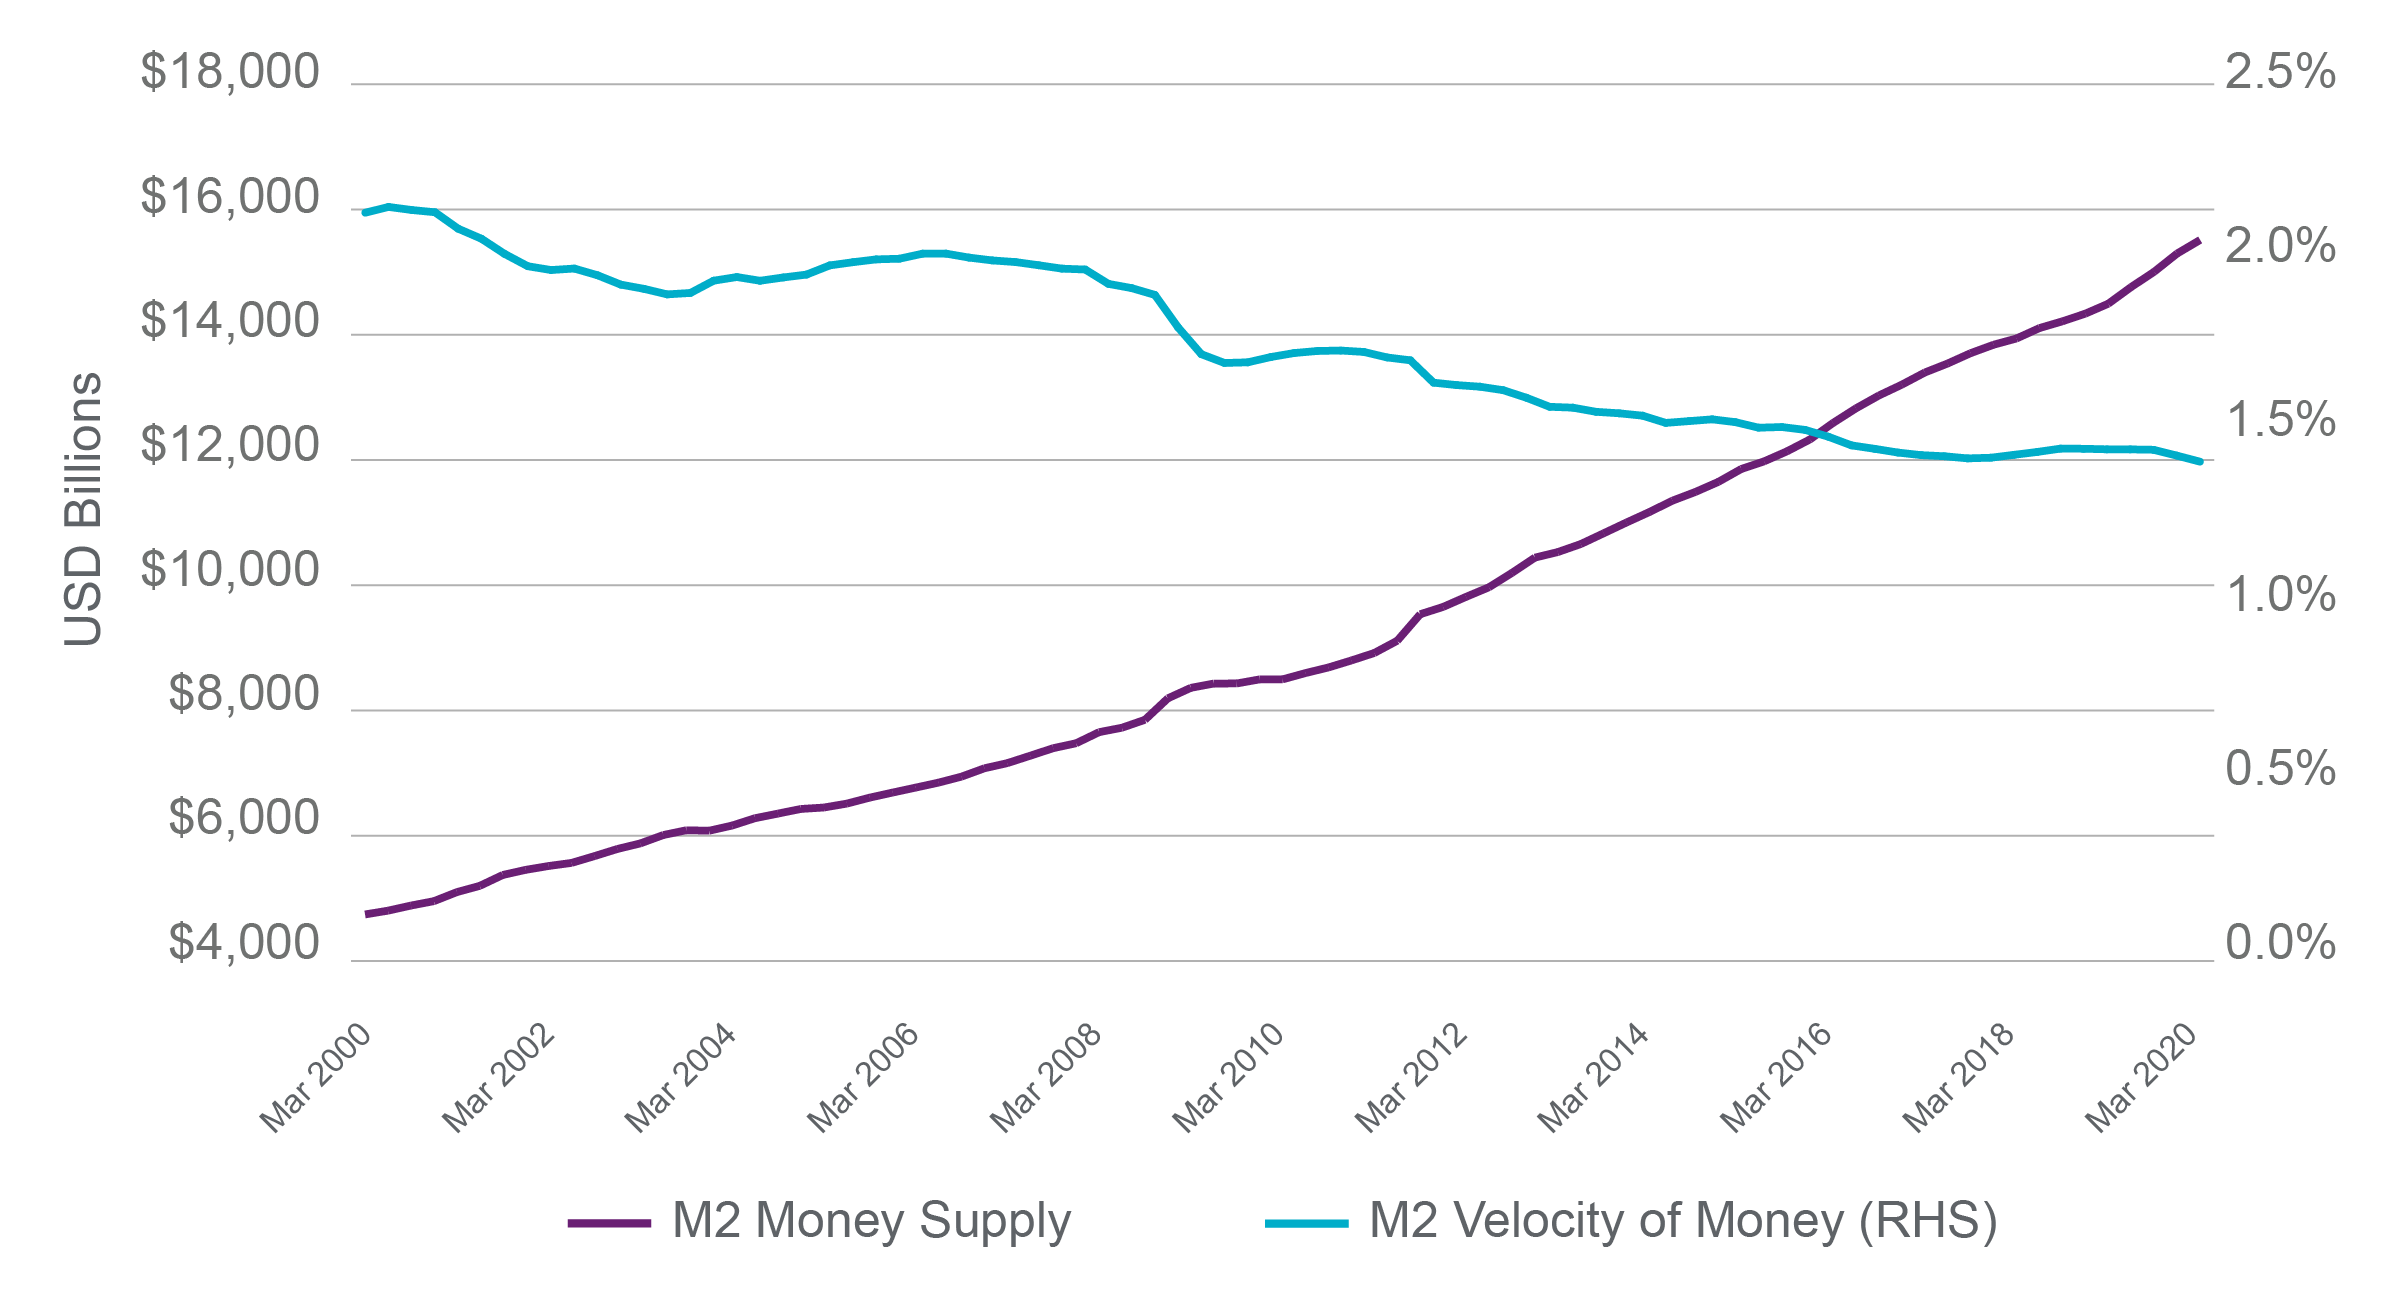 Chart - M2 Money Supply and M2 Velocity of Money (RHS)